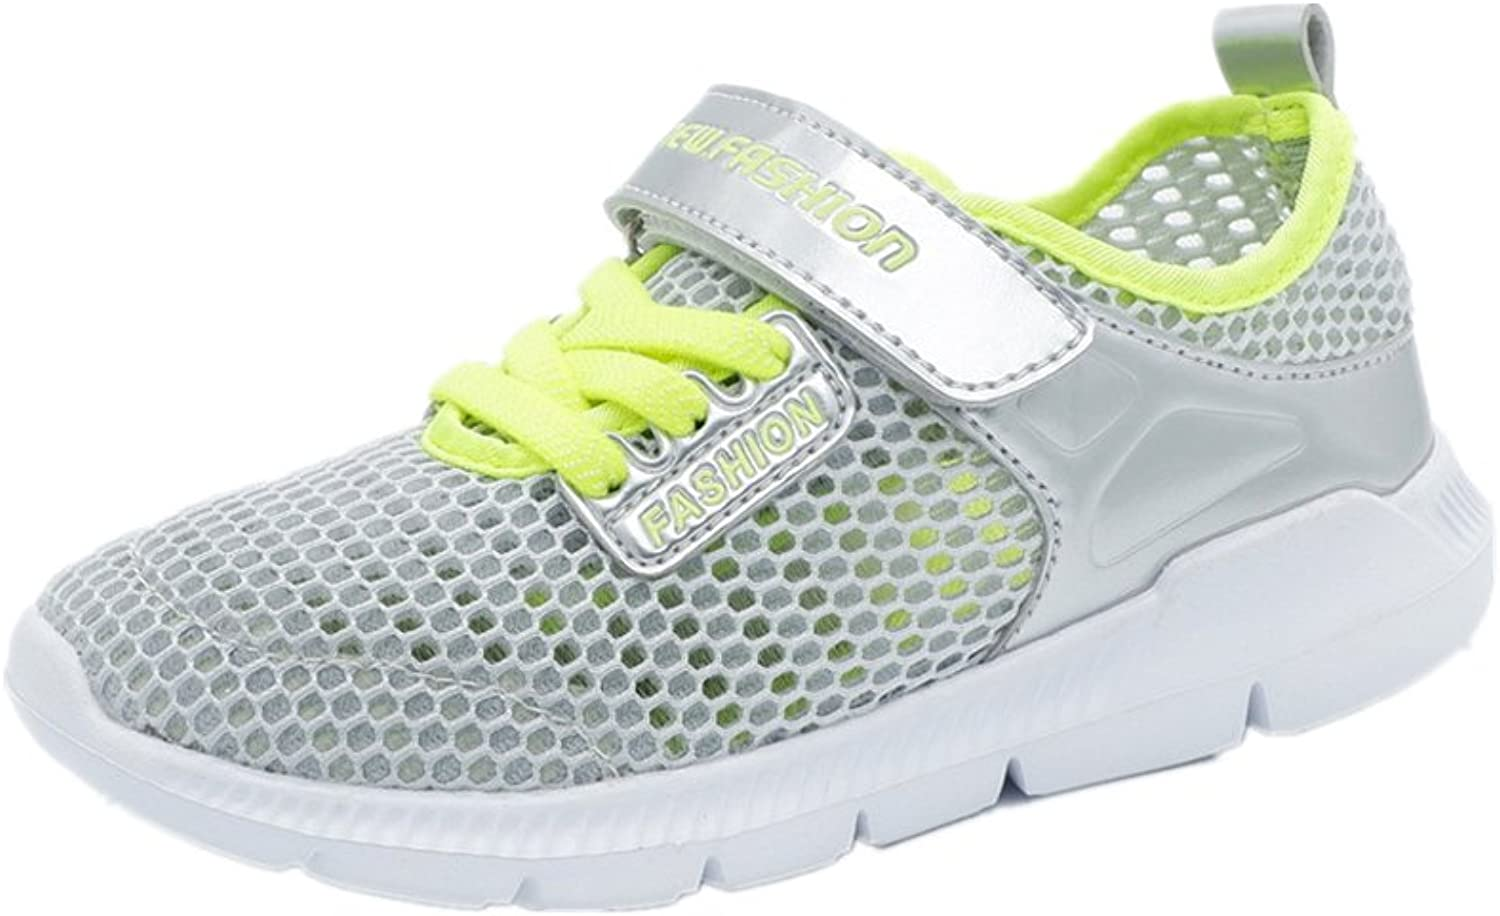 YUBUKE Women Athletic shoes Casual Mesh Walking Sneakers Breathable Running shoes